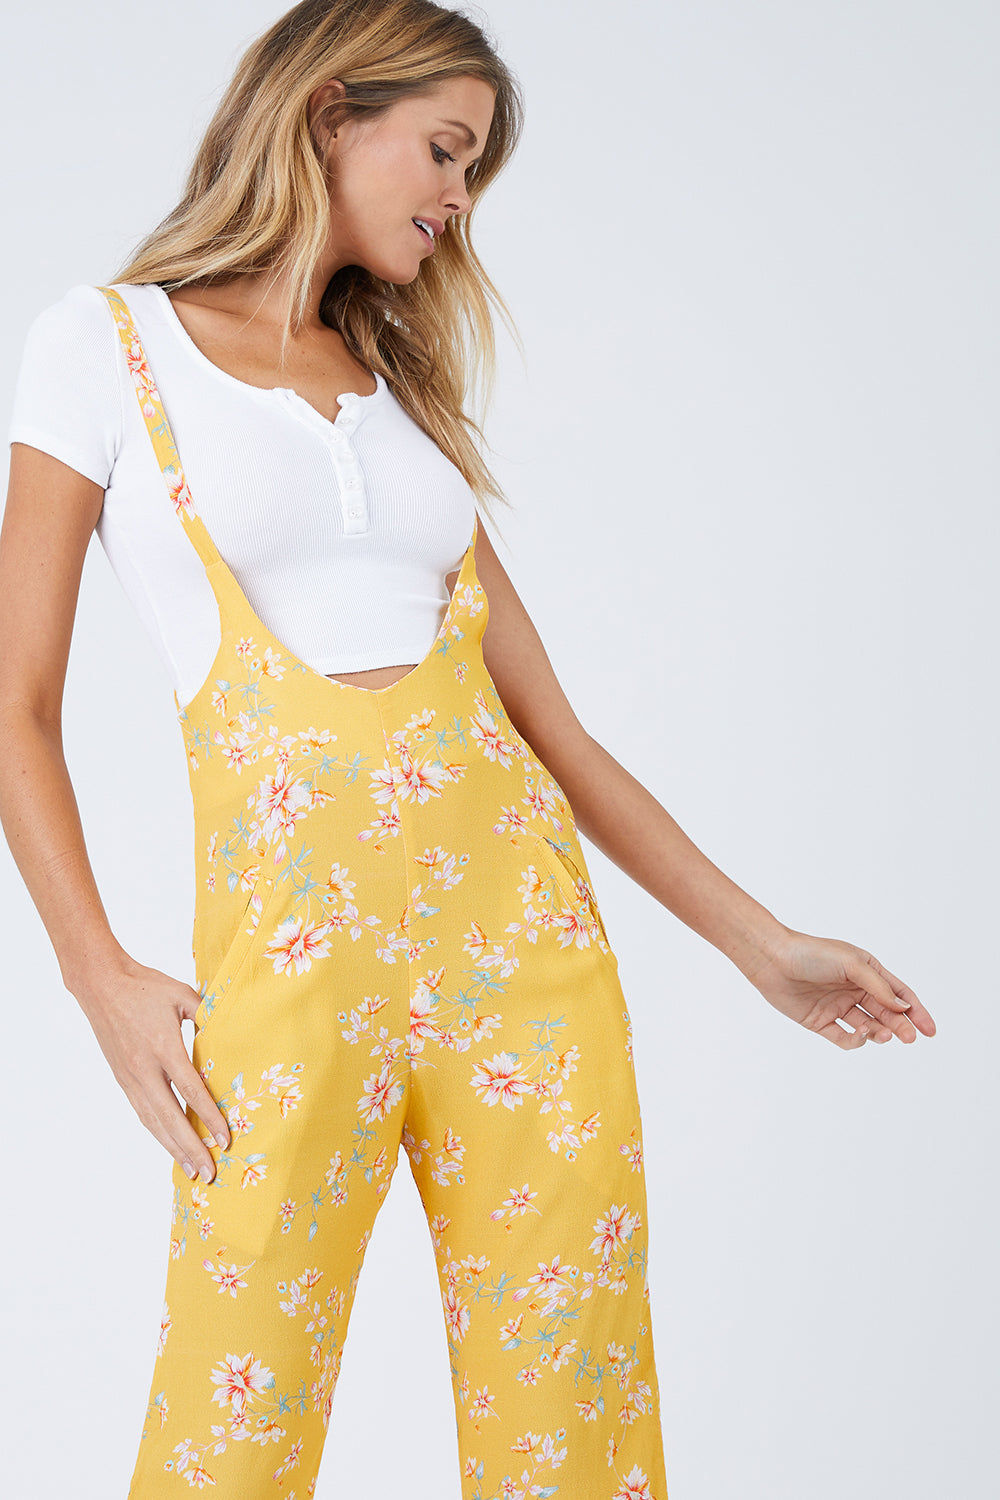 FLYNN SKYE Easy Rider Jumper - Touch Of Honey Jumpsuit | Touch Of Honey| Flynn Skye Easy Rider Jumper - Touch Of Honey Overall jumper Wide leg Thin straps at hight of waist Dry clean Made in Los Angeles Front View